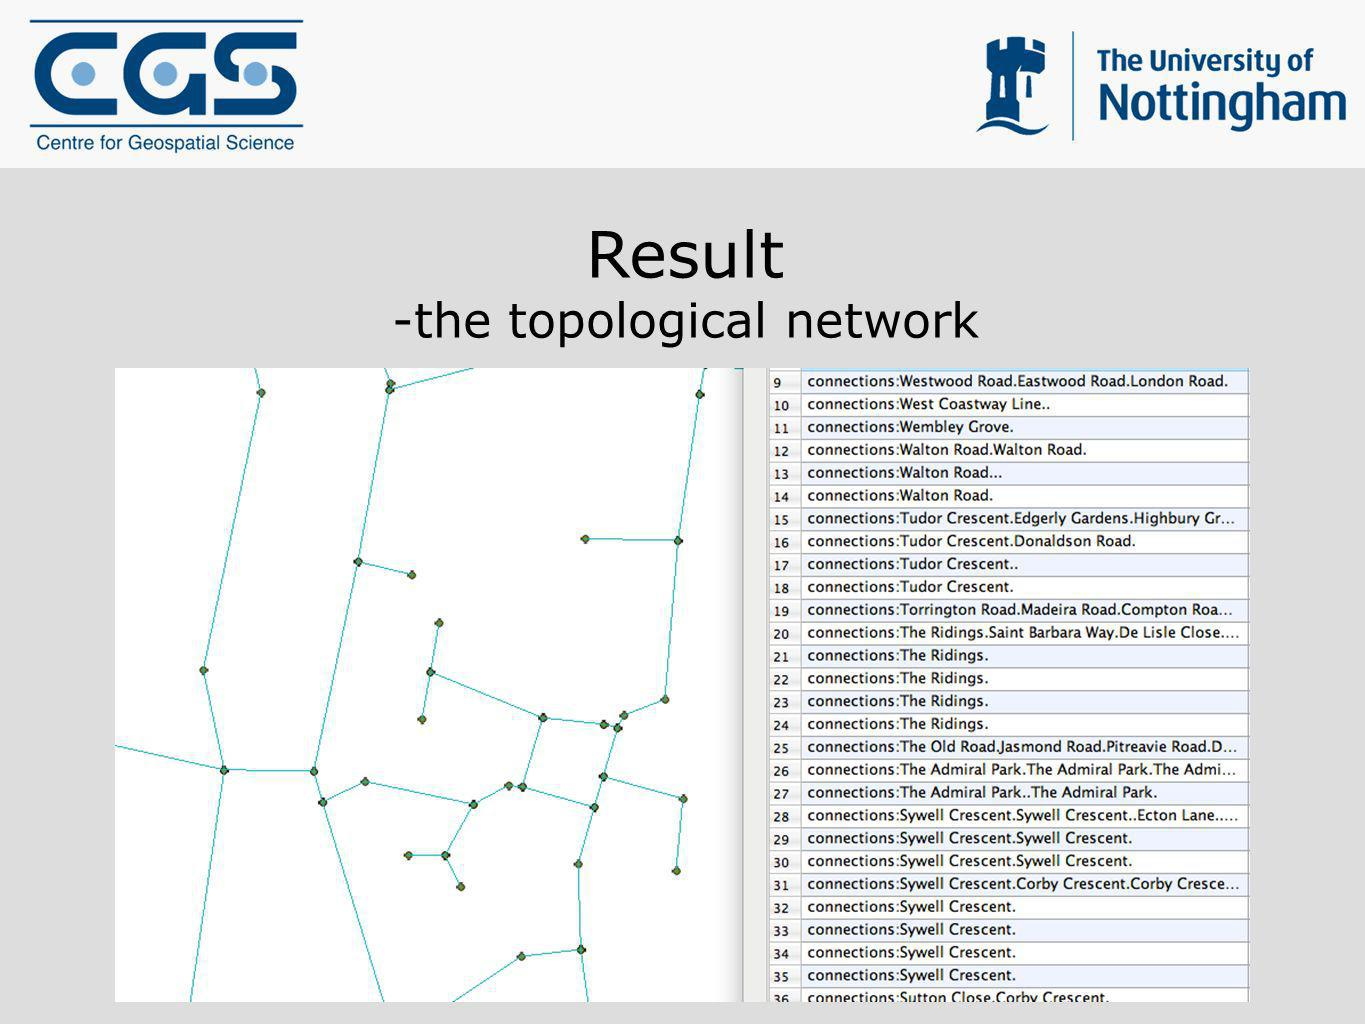 -the topological network